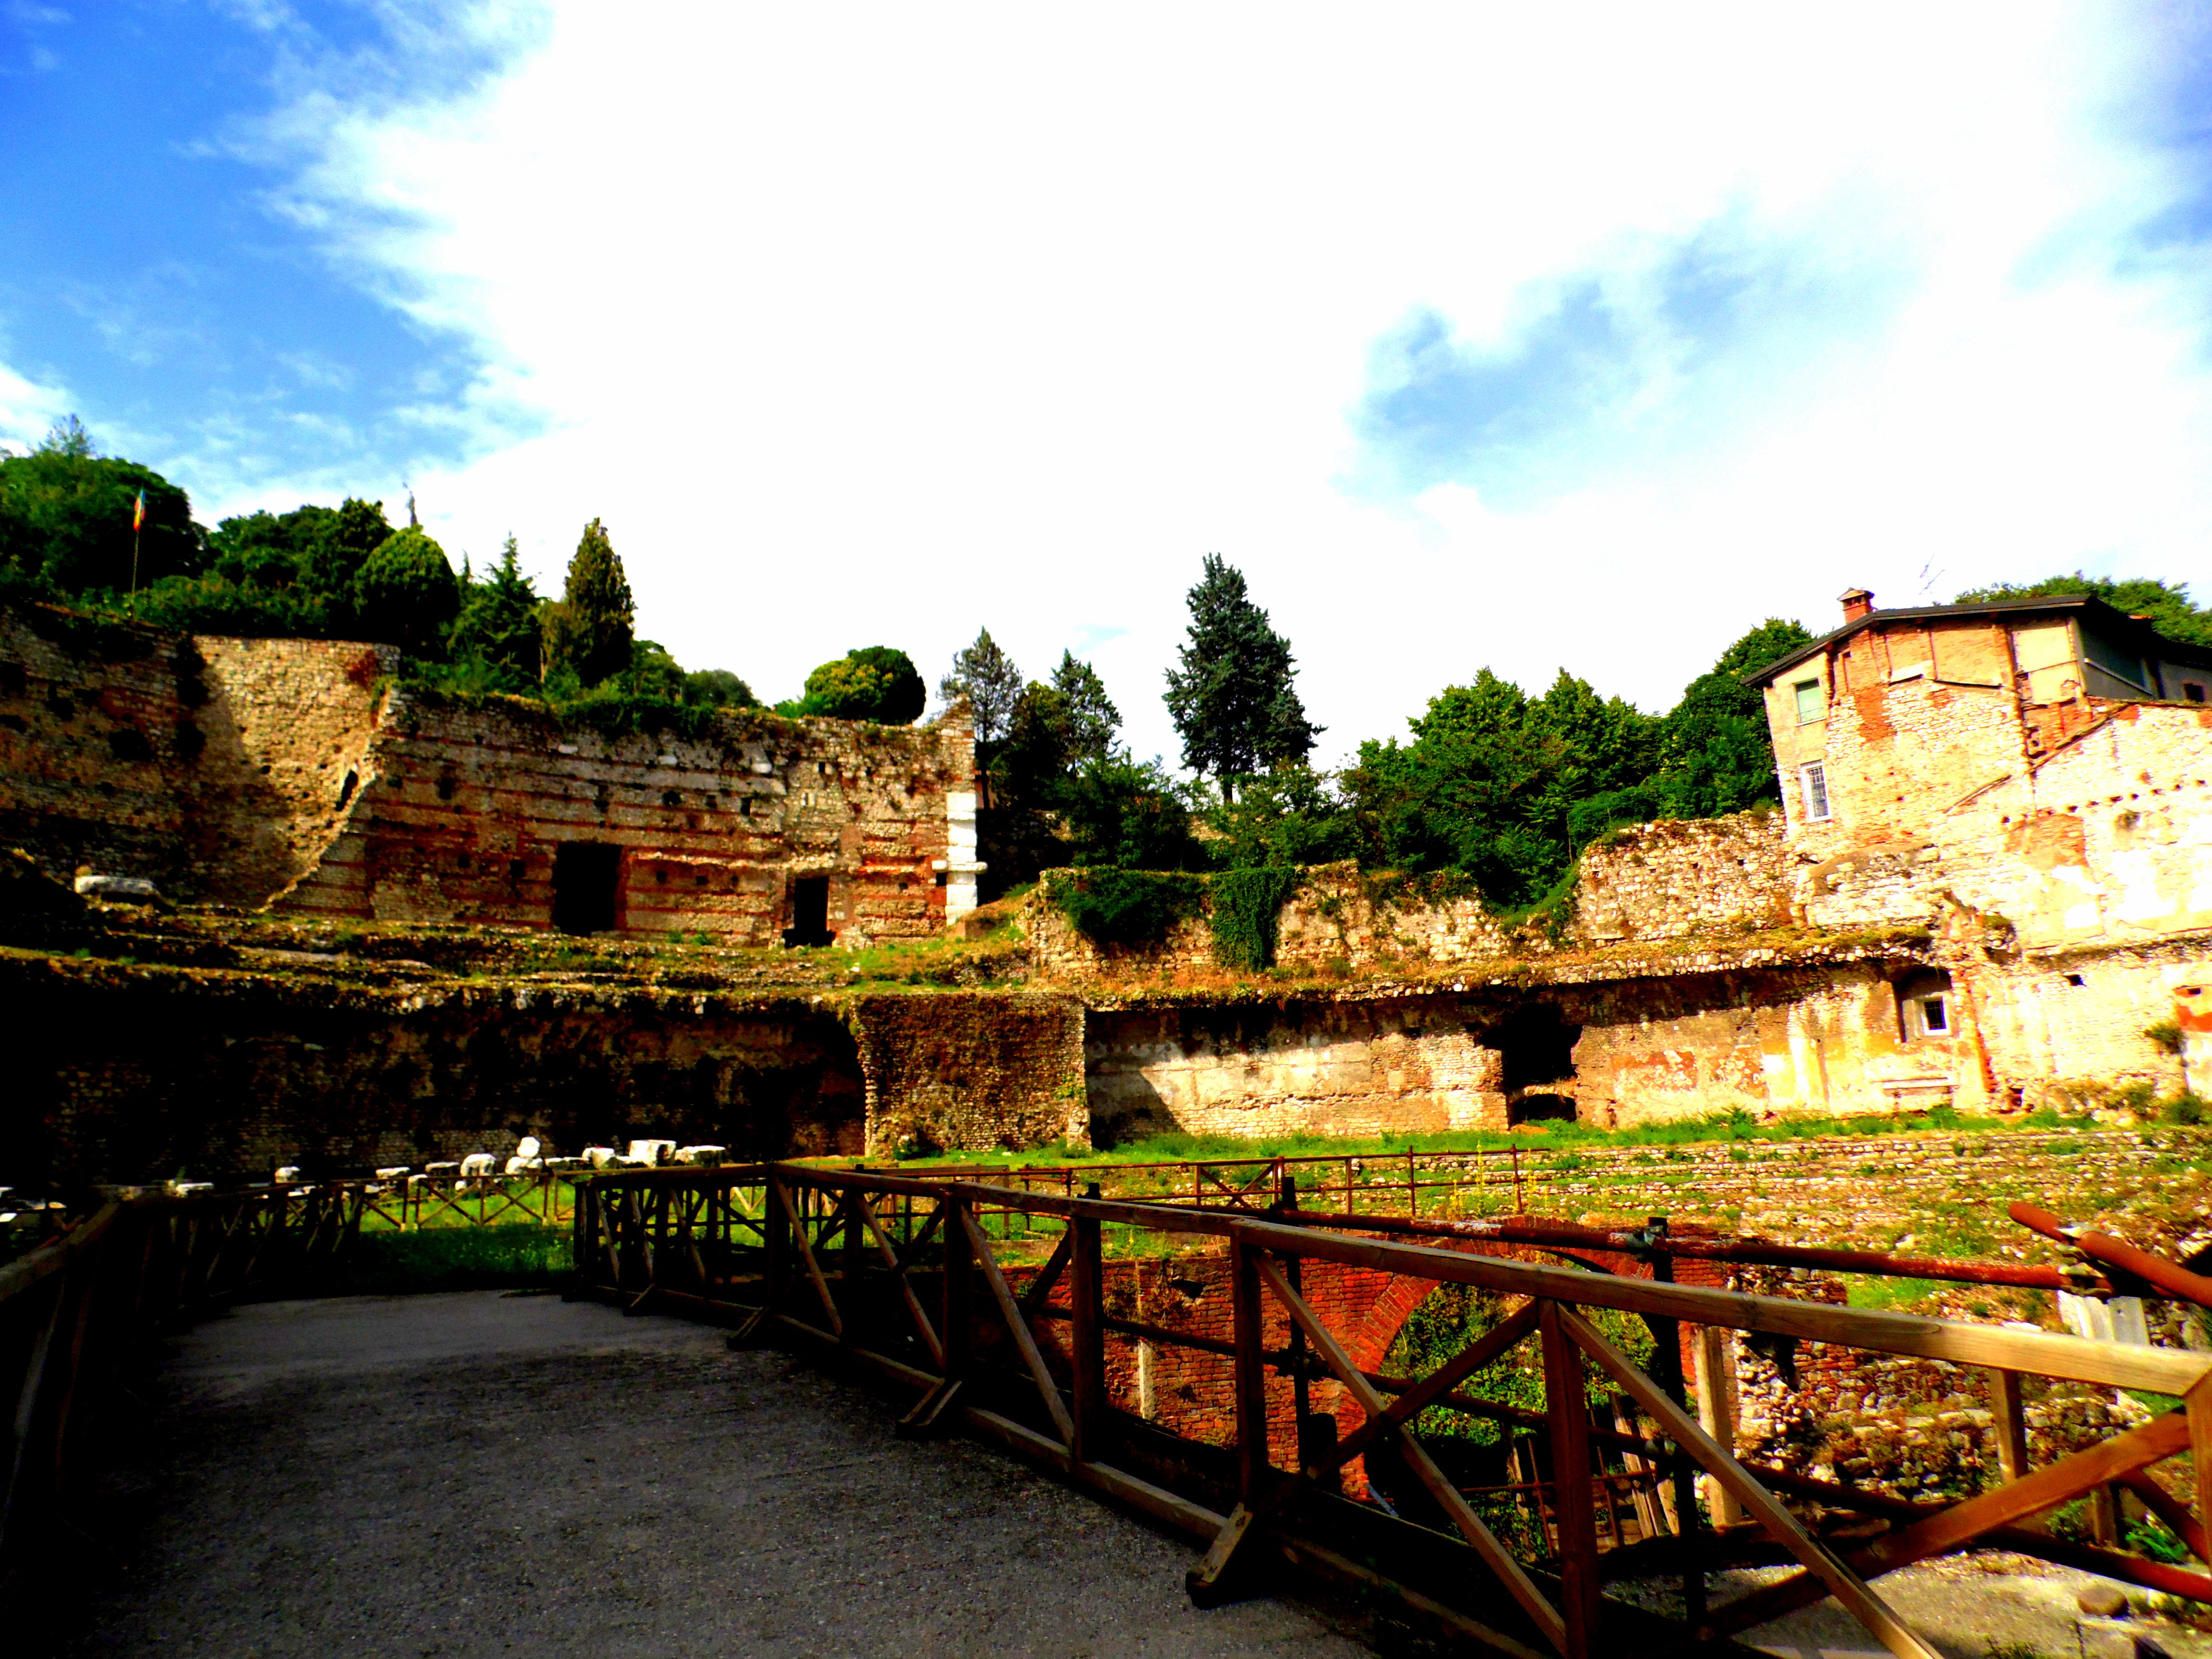 Brescia: the ancient Theatre